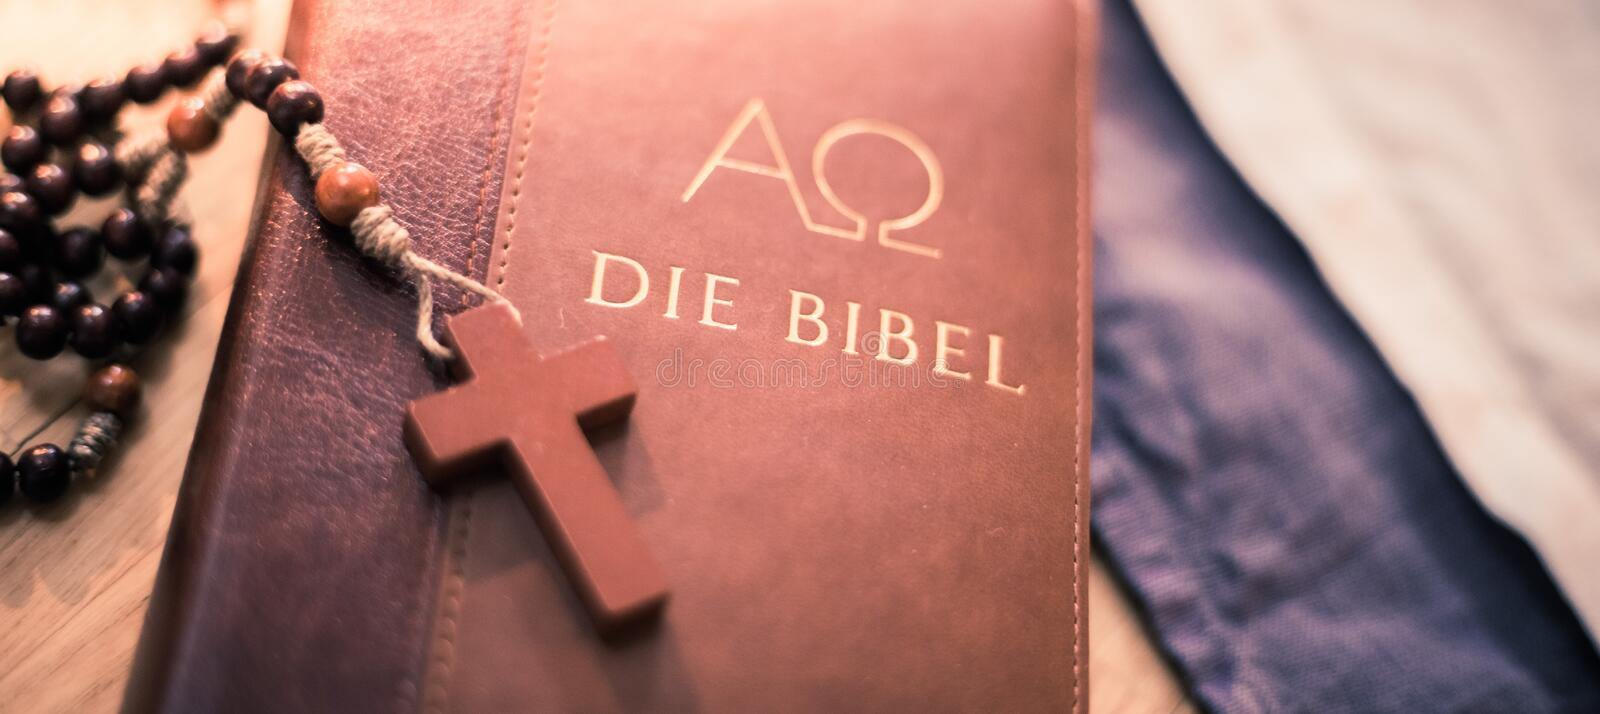 Holy bible and rosary: Christian bible and rosary on a wooden desk. Holy bible and rosary are lying on a wooden desk religion bibel religious catholic church stock images